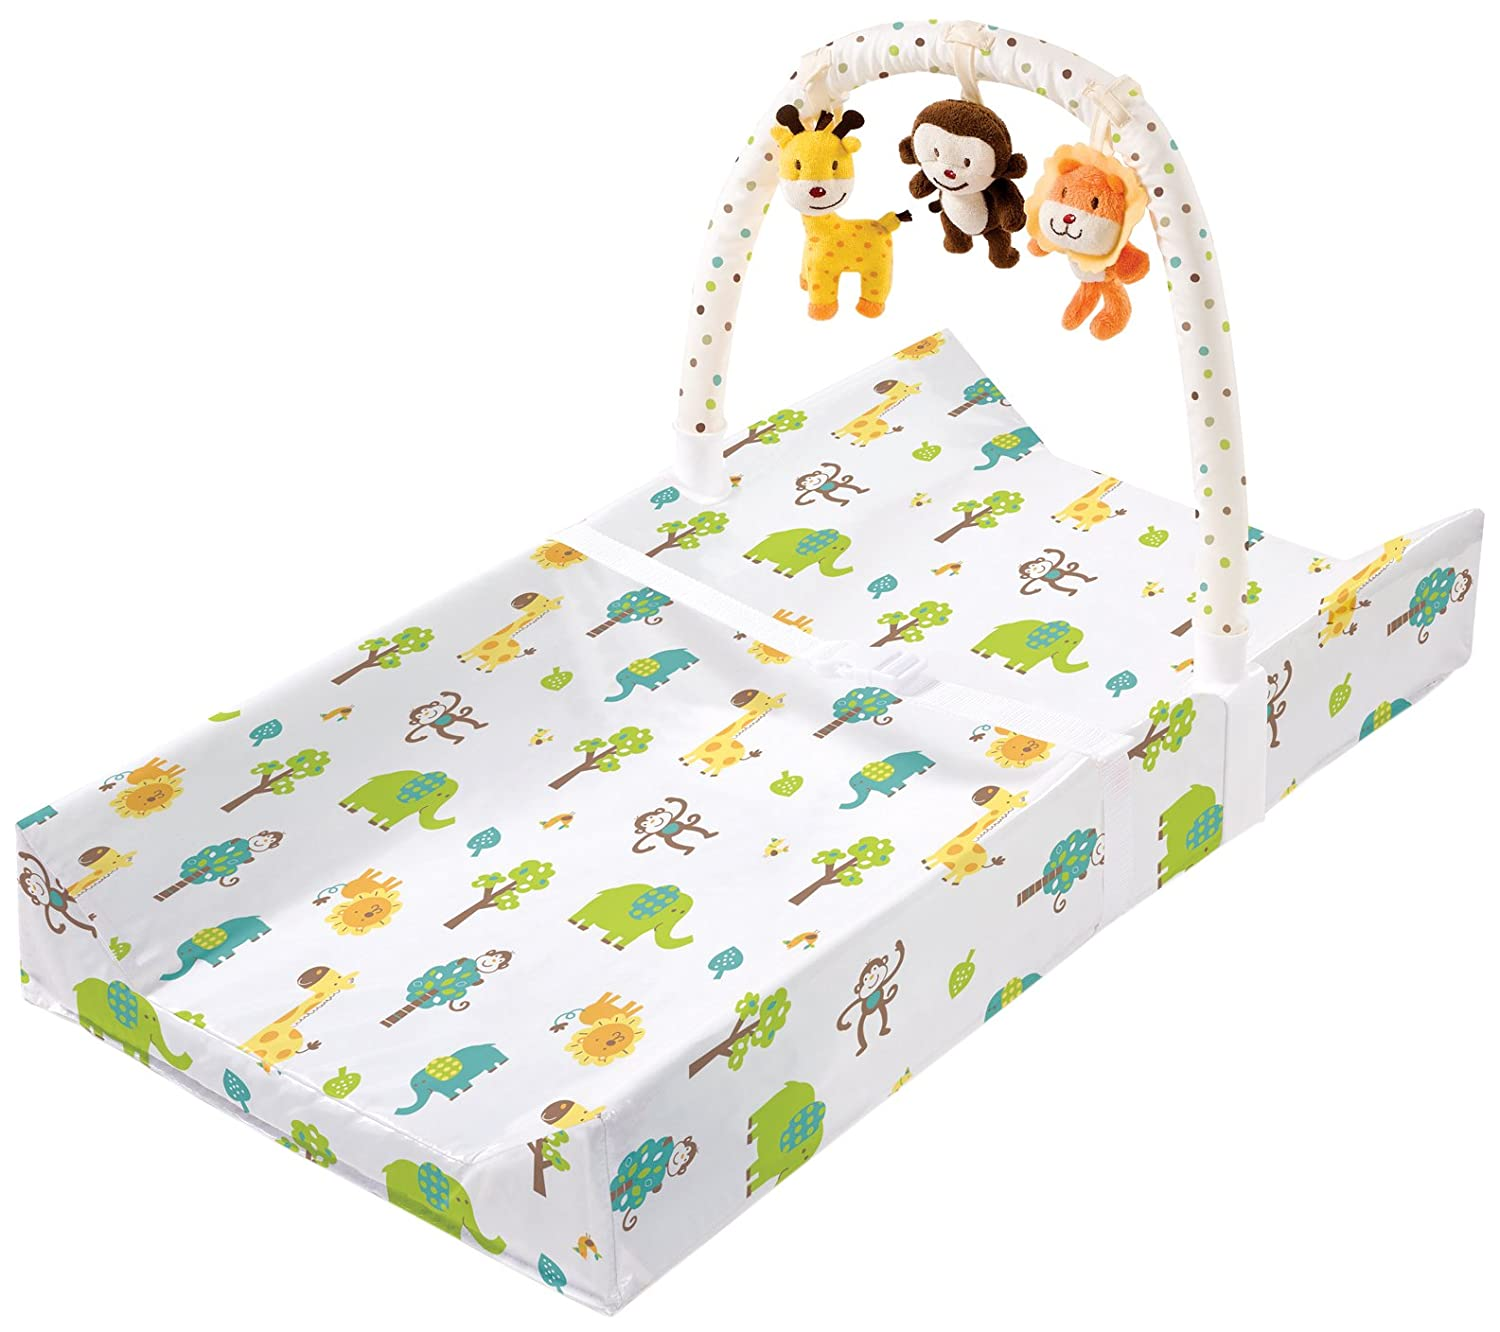 Amazoncom Summer Infant Change Pad with Toybar Safari Fun